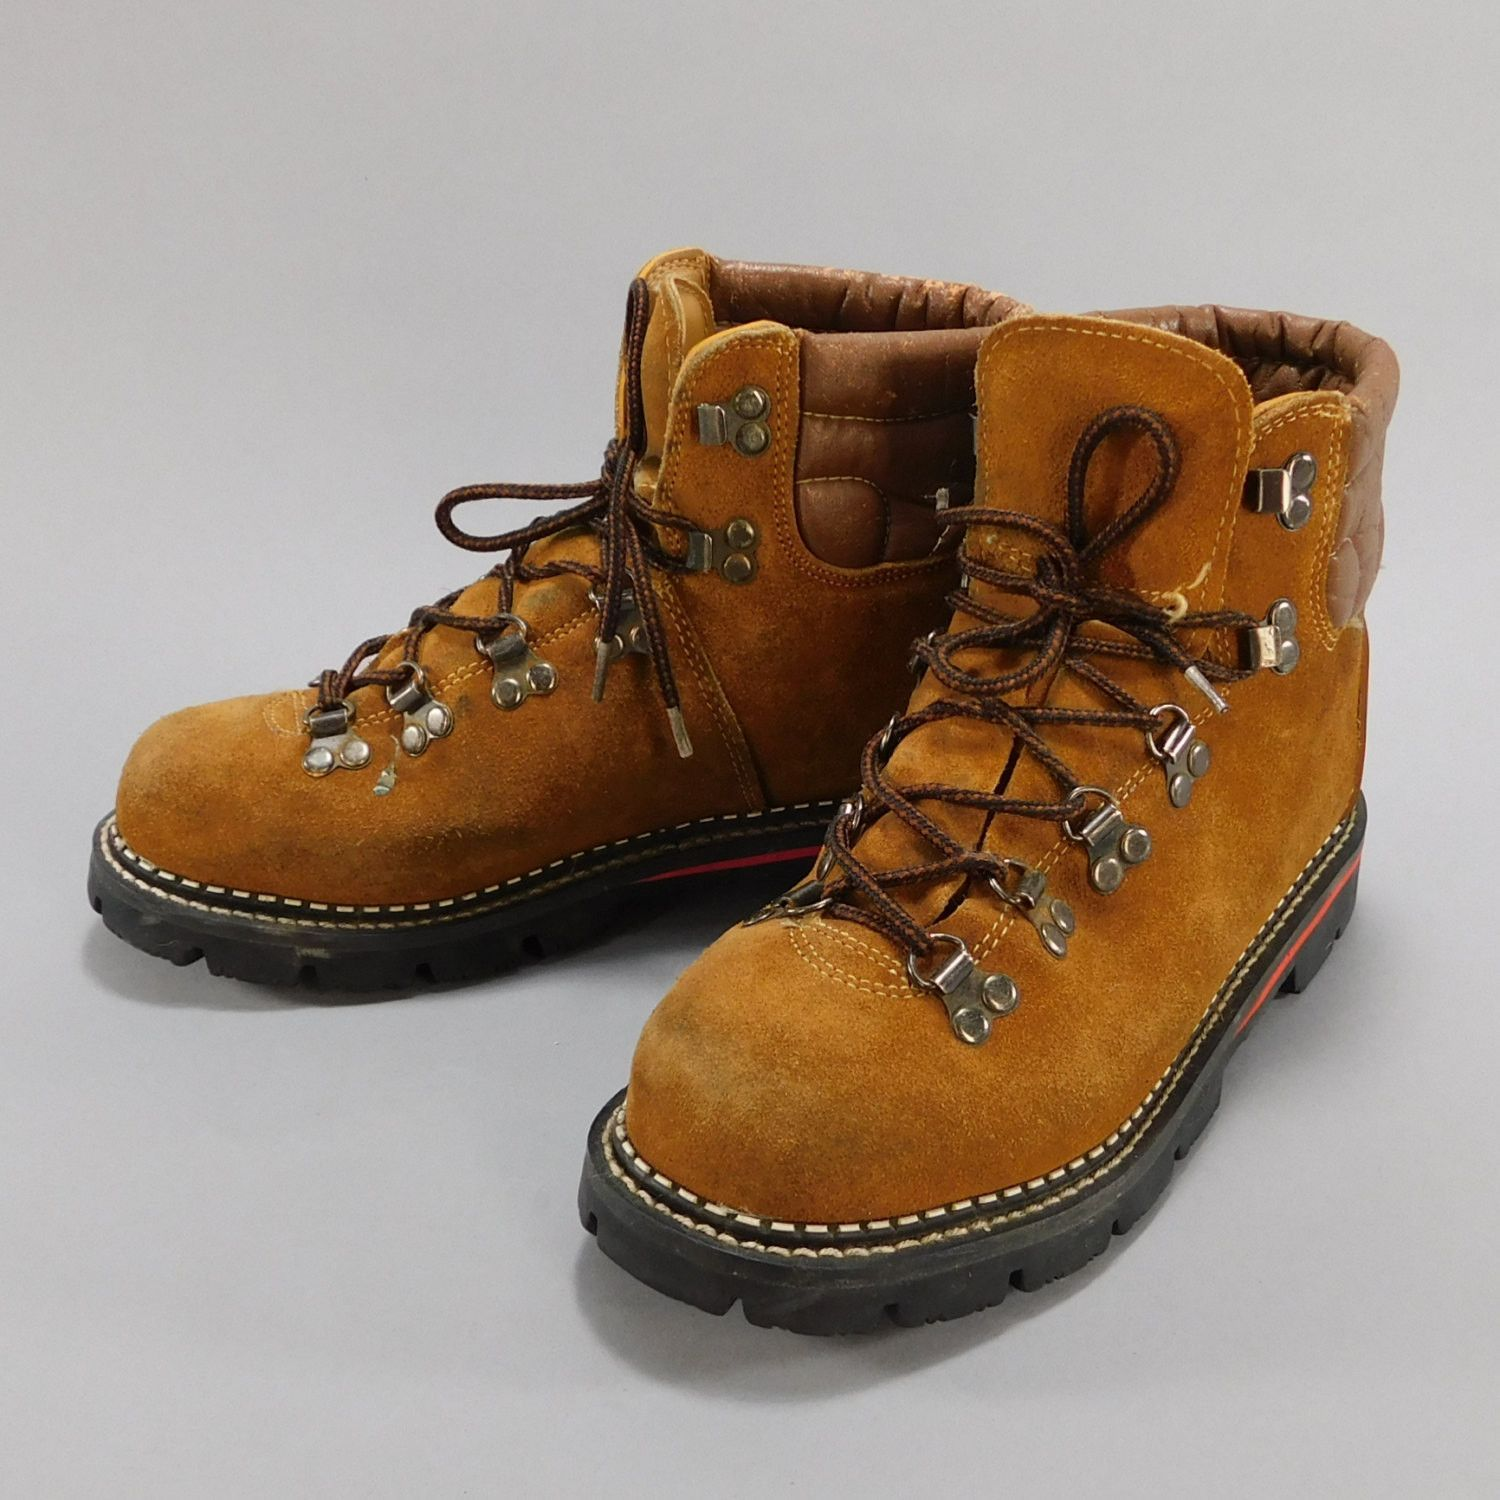 Vintage 1970s Hiking Boots Suede Hikers Boots Hiking Fashion Hiking Boots